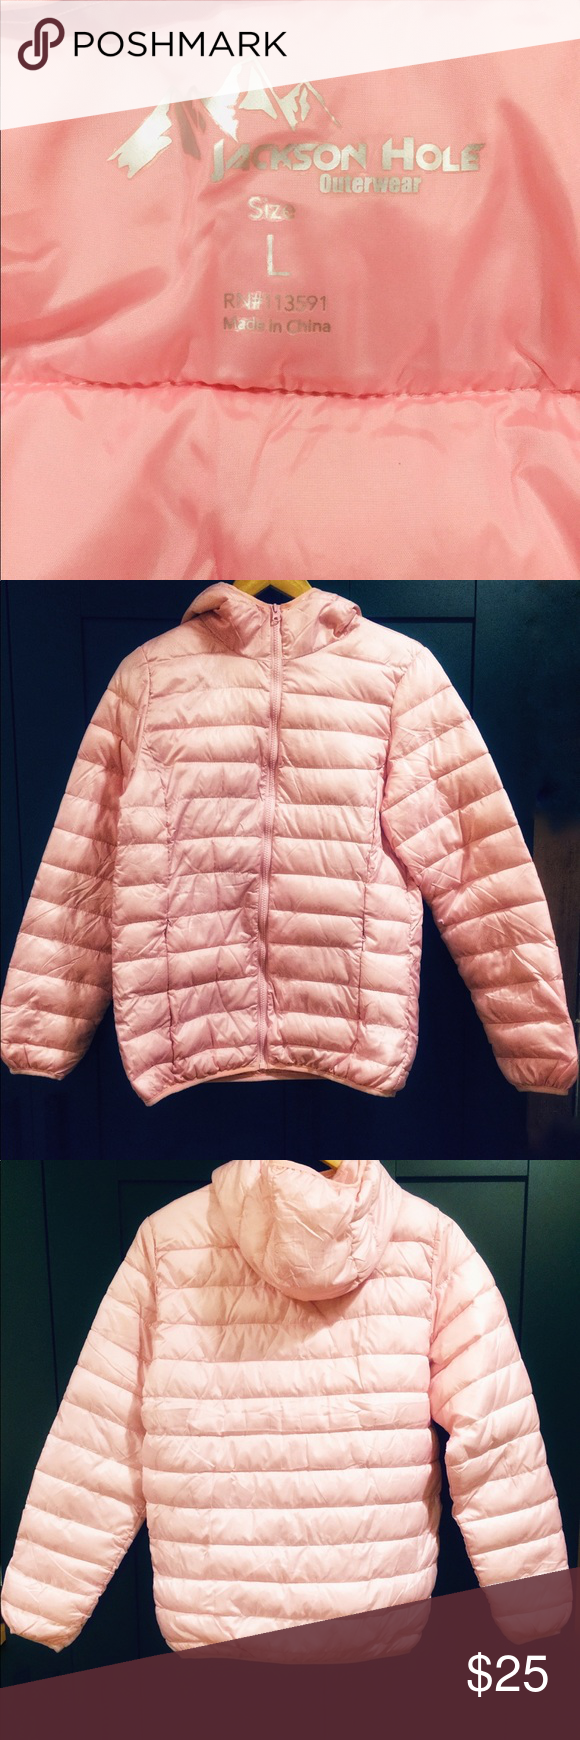 Light Weight Pink Puff Jacket Ladies Jackets For Women Lady Jackets [ 1740 x 580 Pixel ]